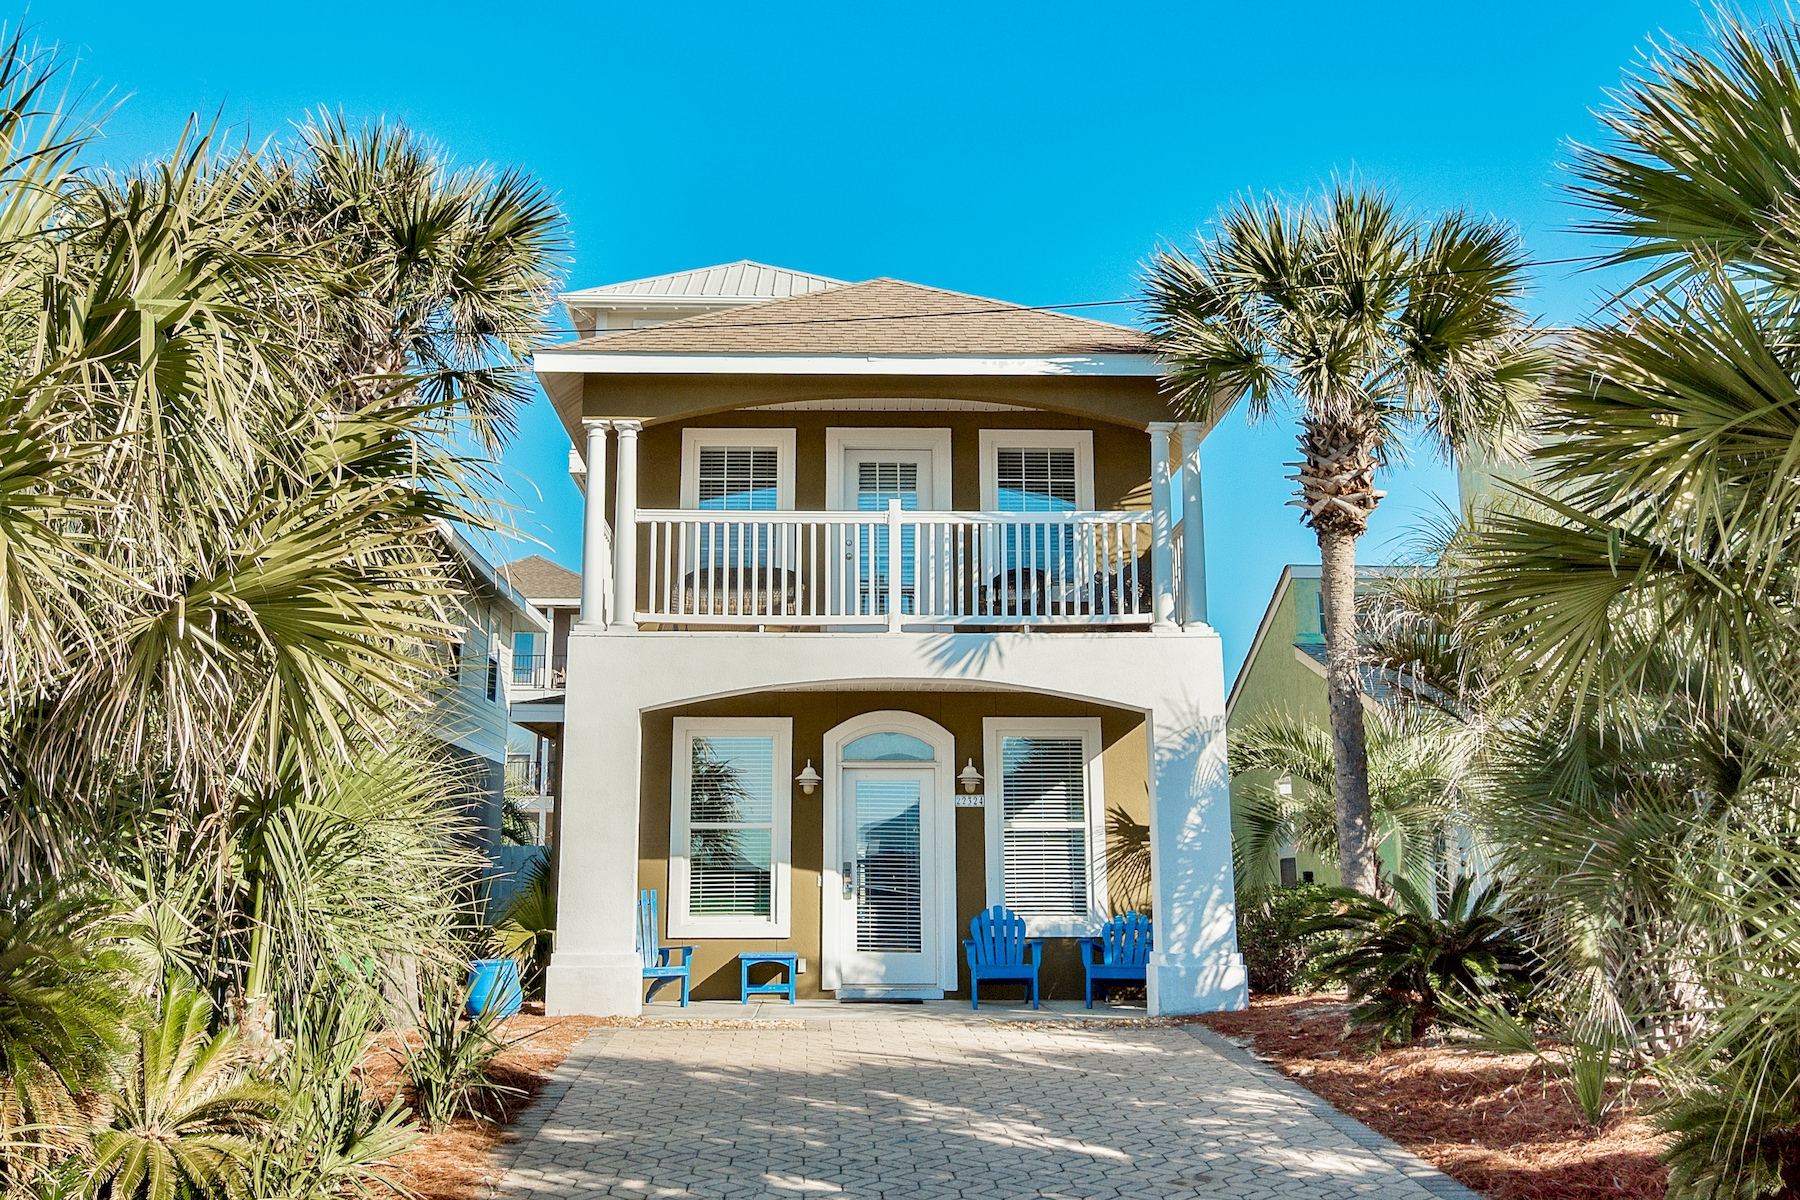 Tek Ailelik Ev için Satış at Coastal Home Across from the Beach with Gulf Views 22324 Front Beach Road Panama City Beach, Florida 32413 Amerika Birleşik Devletleri